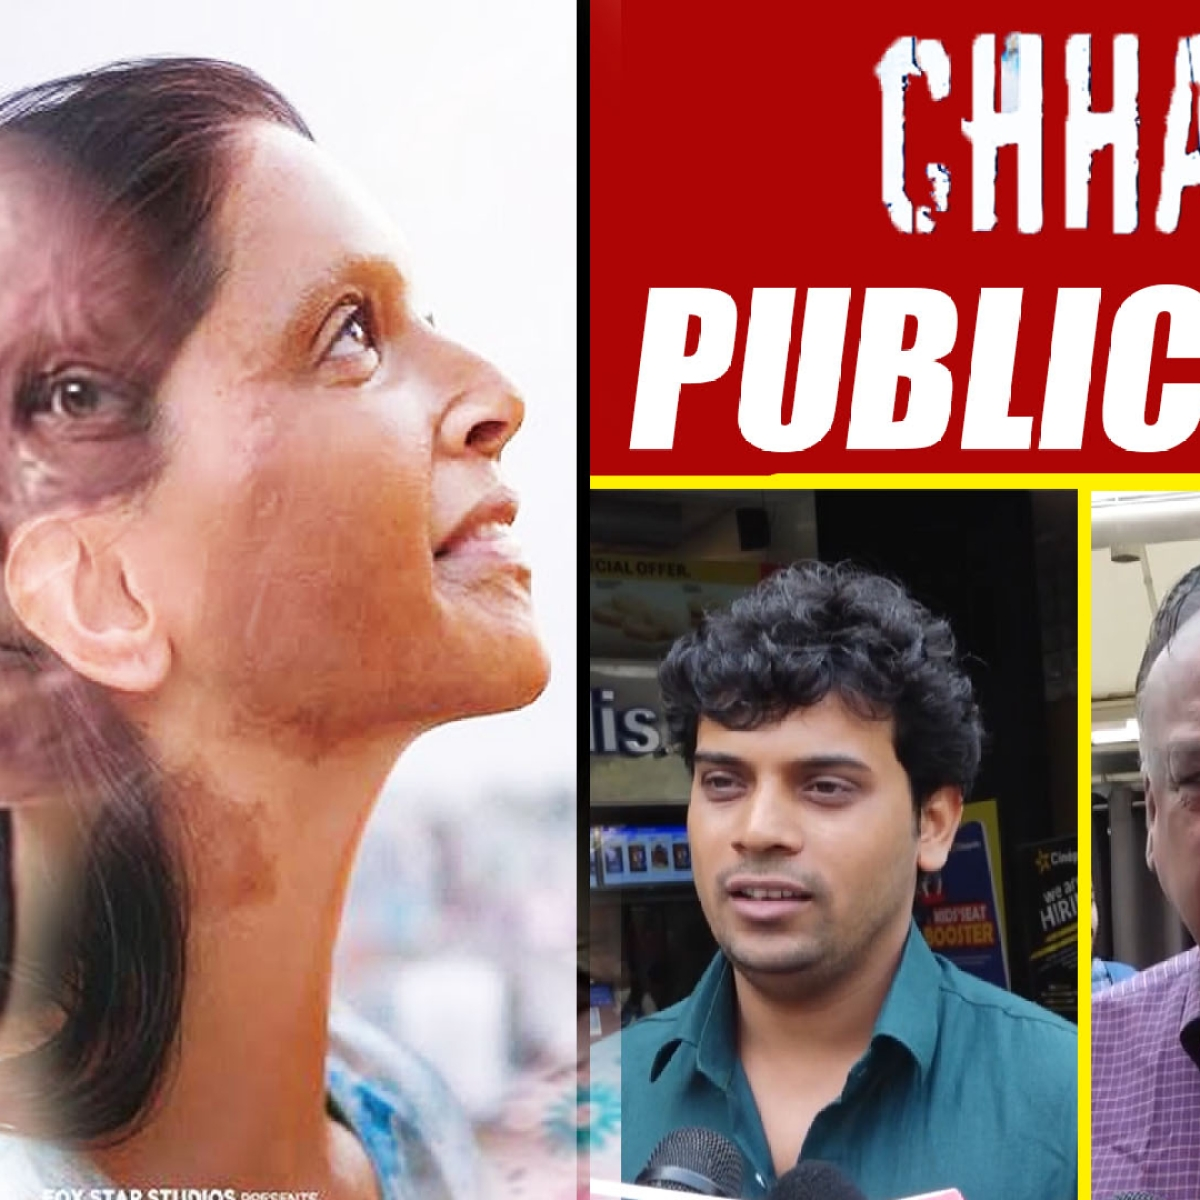 Chhapaak PUBLIC REVIEW | Moviegoers hail Deepika's performance in the movie